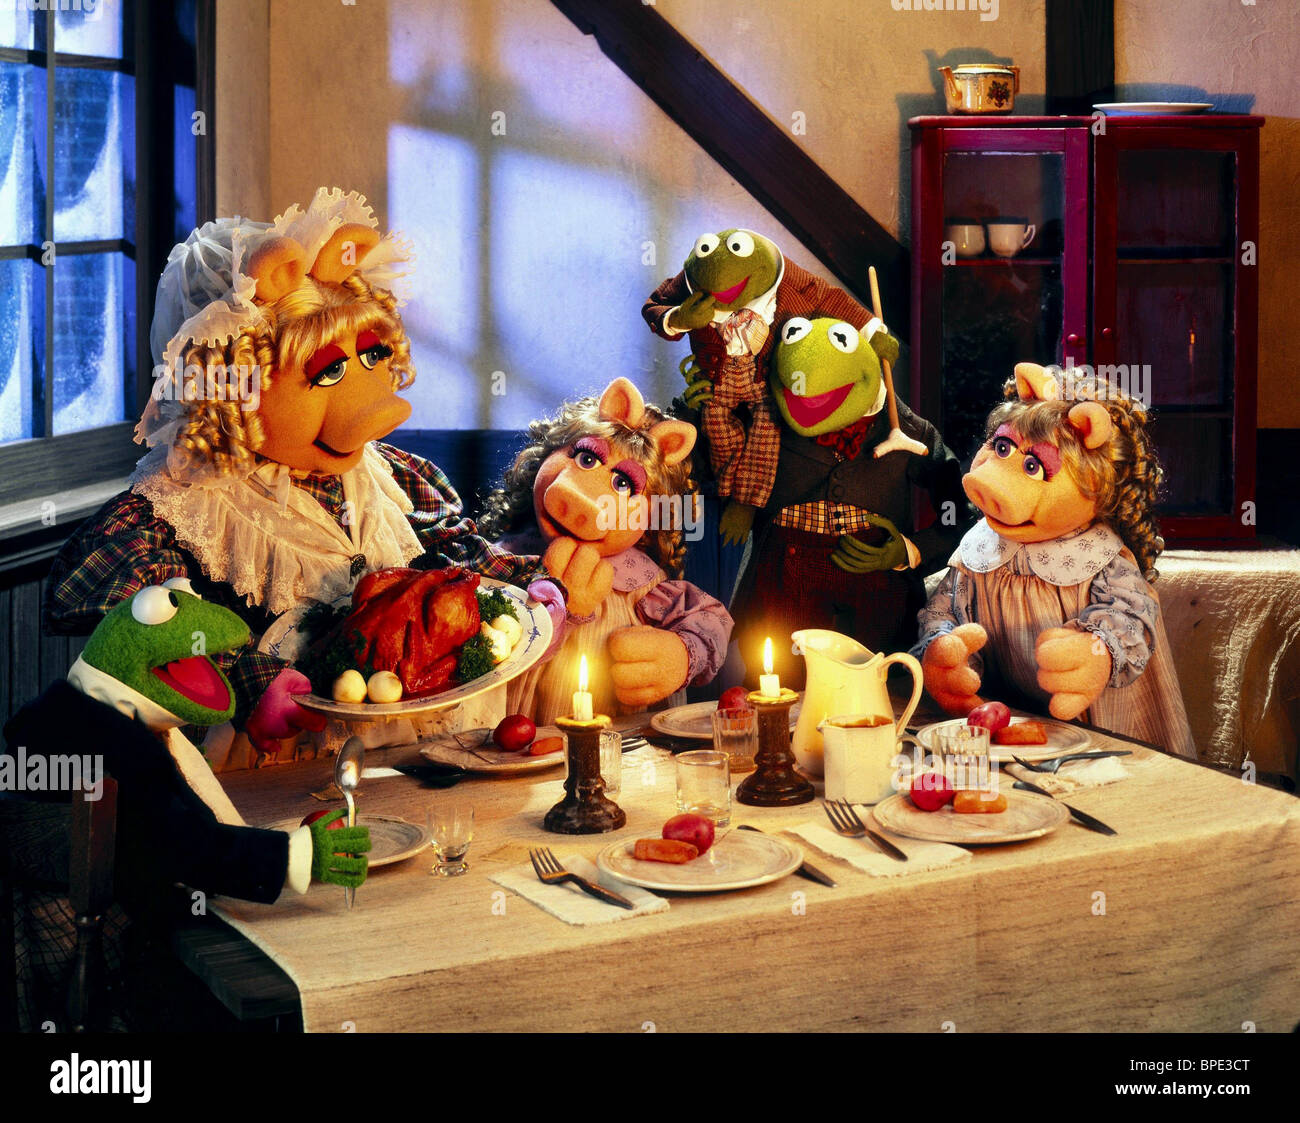 A Muppet Christmas Carol: MISS PIGGY TINY TIM & KERMIT THE FROG THE MUPPET CHRISTMAS